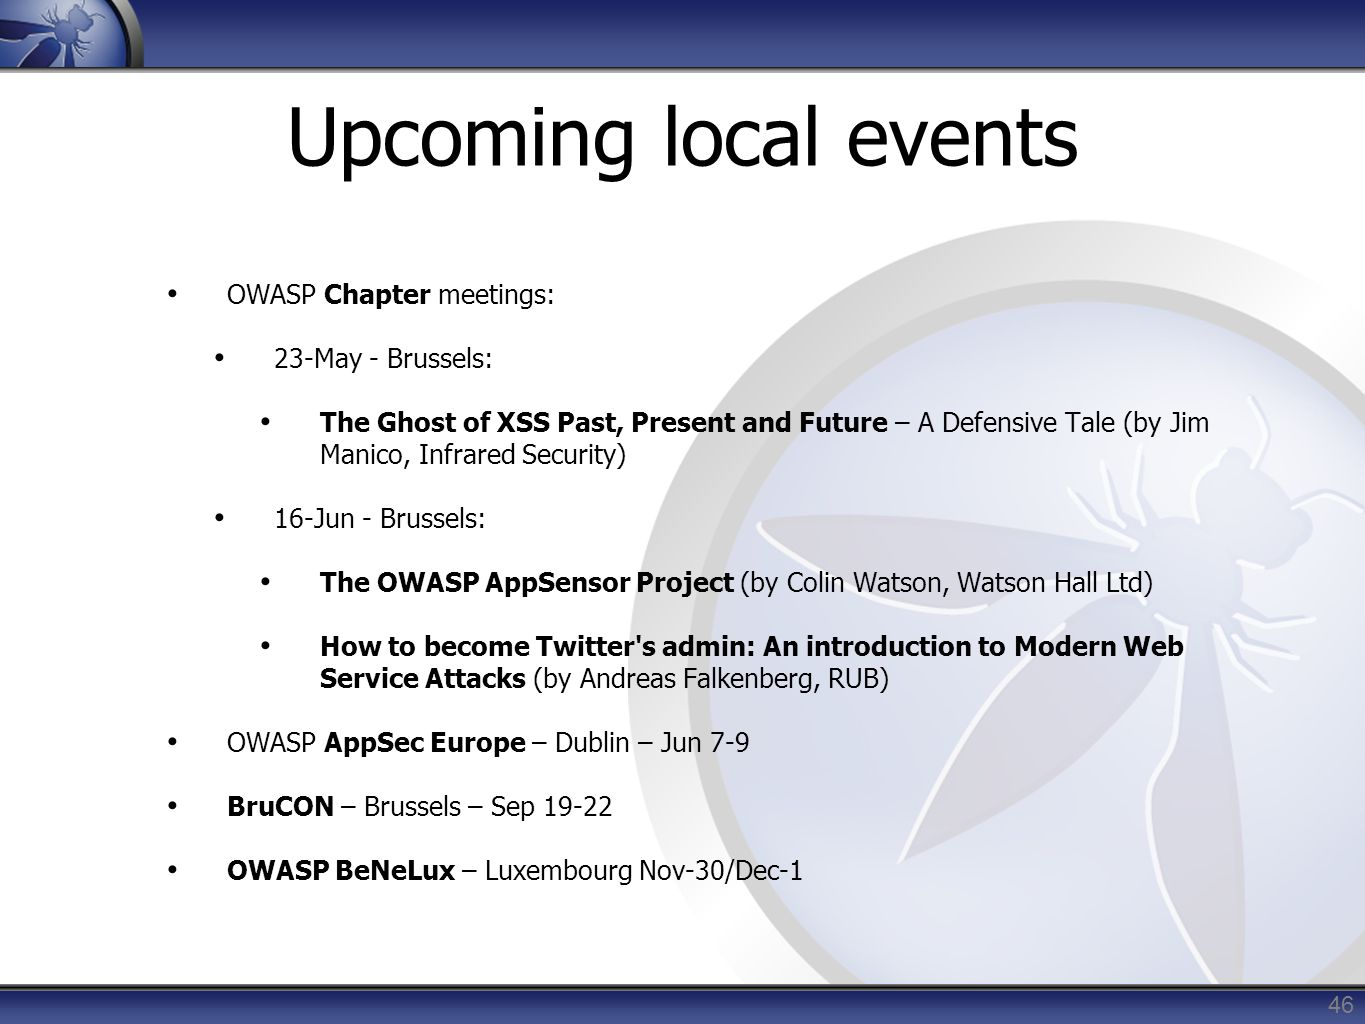 Upcoming local events OWASP Chapter meetings: 23-May - Brussels: The Ghost of XSS Past, Present and Future – A Defensive Tale (by Jim Manico, Infrared Security) 16-Jun - Brussels: The OWASP AppSensor Project (by Colin Watson, Watson Hall Ltd) How to become Twitter s admin: An introduction to Modern Web Service Attacks (by Andreas Falkenberg, RUB) OWASP AppSec Europe – Dublin – Jun 7-9 BruCON – Brussels – Sep 19-22 OWASP BeNeLux – Luxembourg Nov-30/Dec-1 46